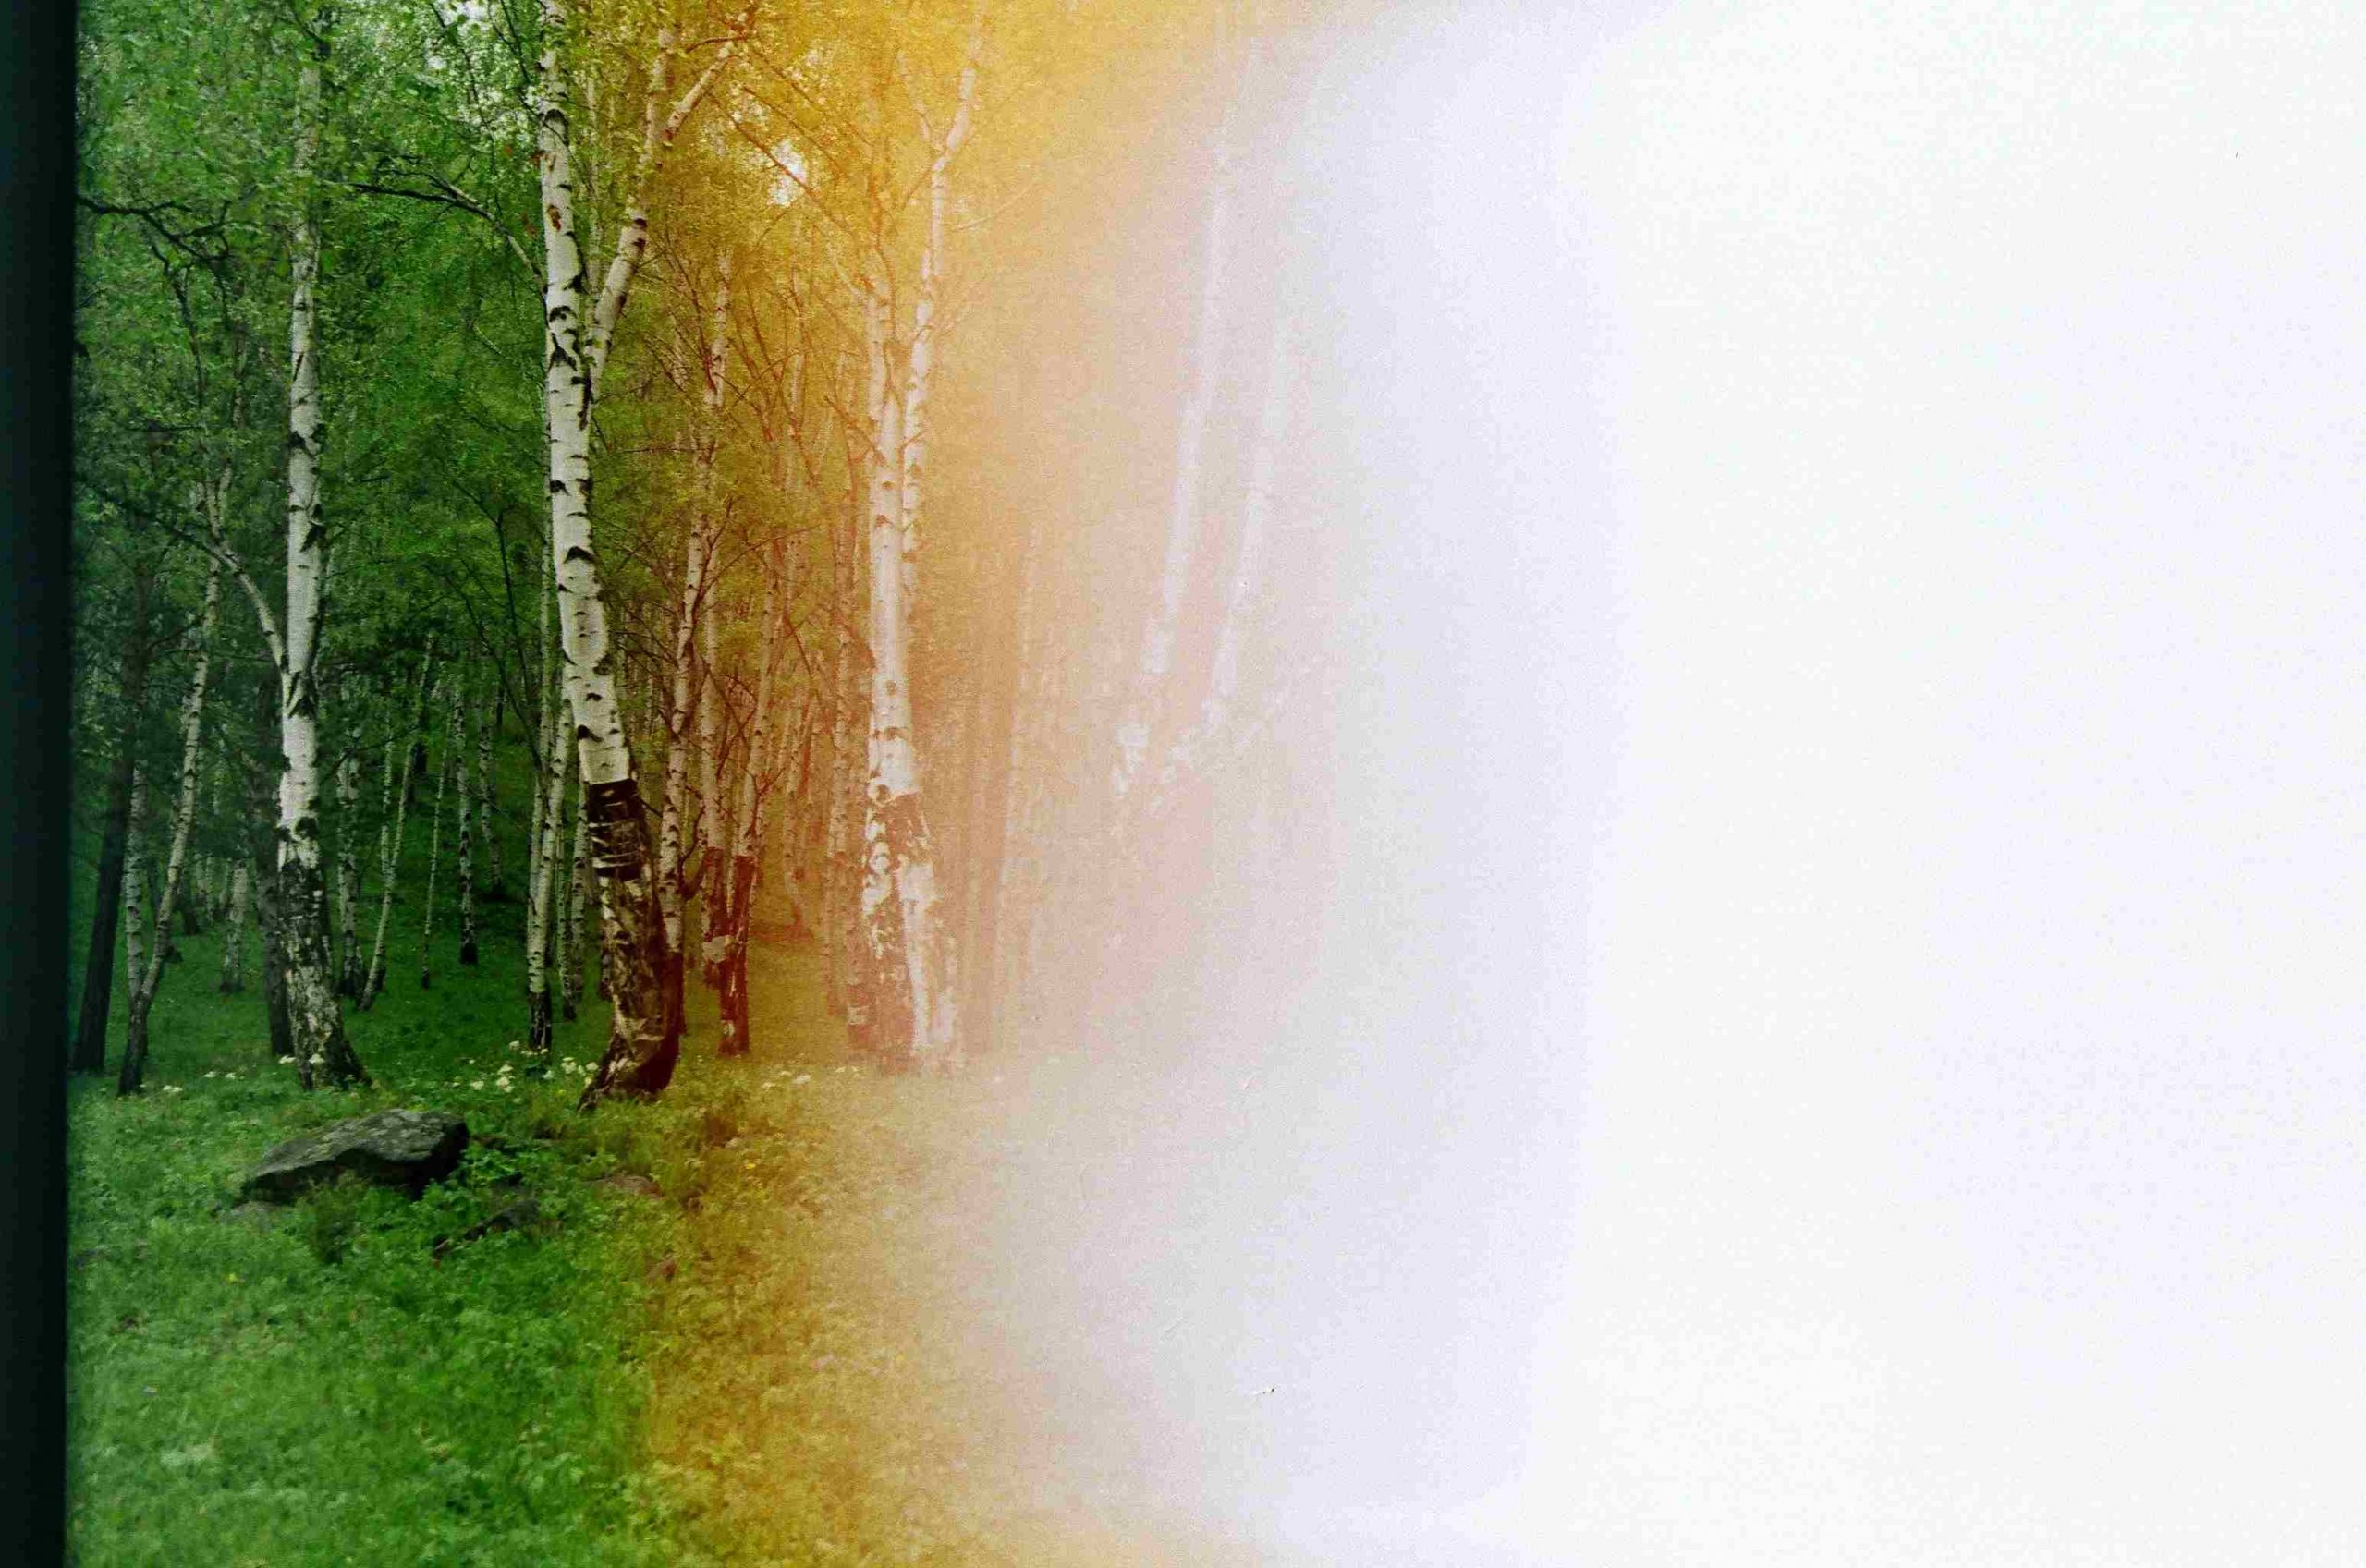 The left side of the image shows birch trees in the summer. The right side of the image is overexposed and white